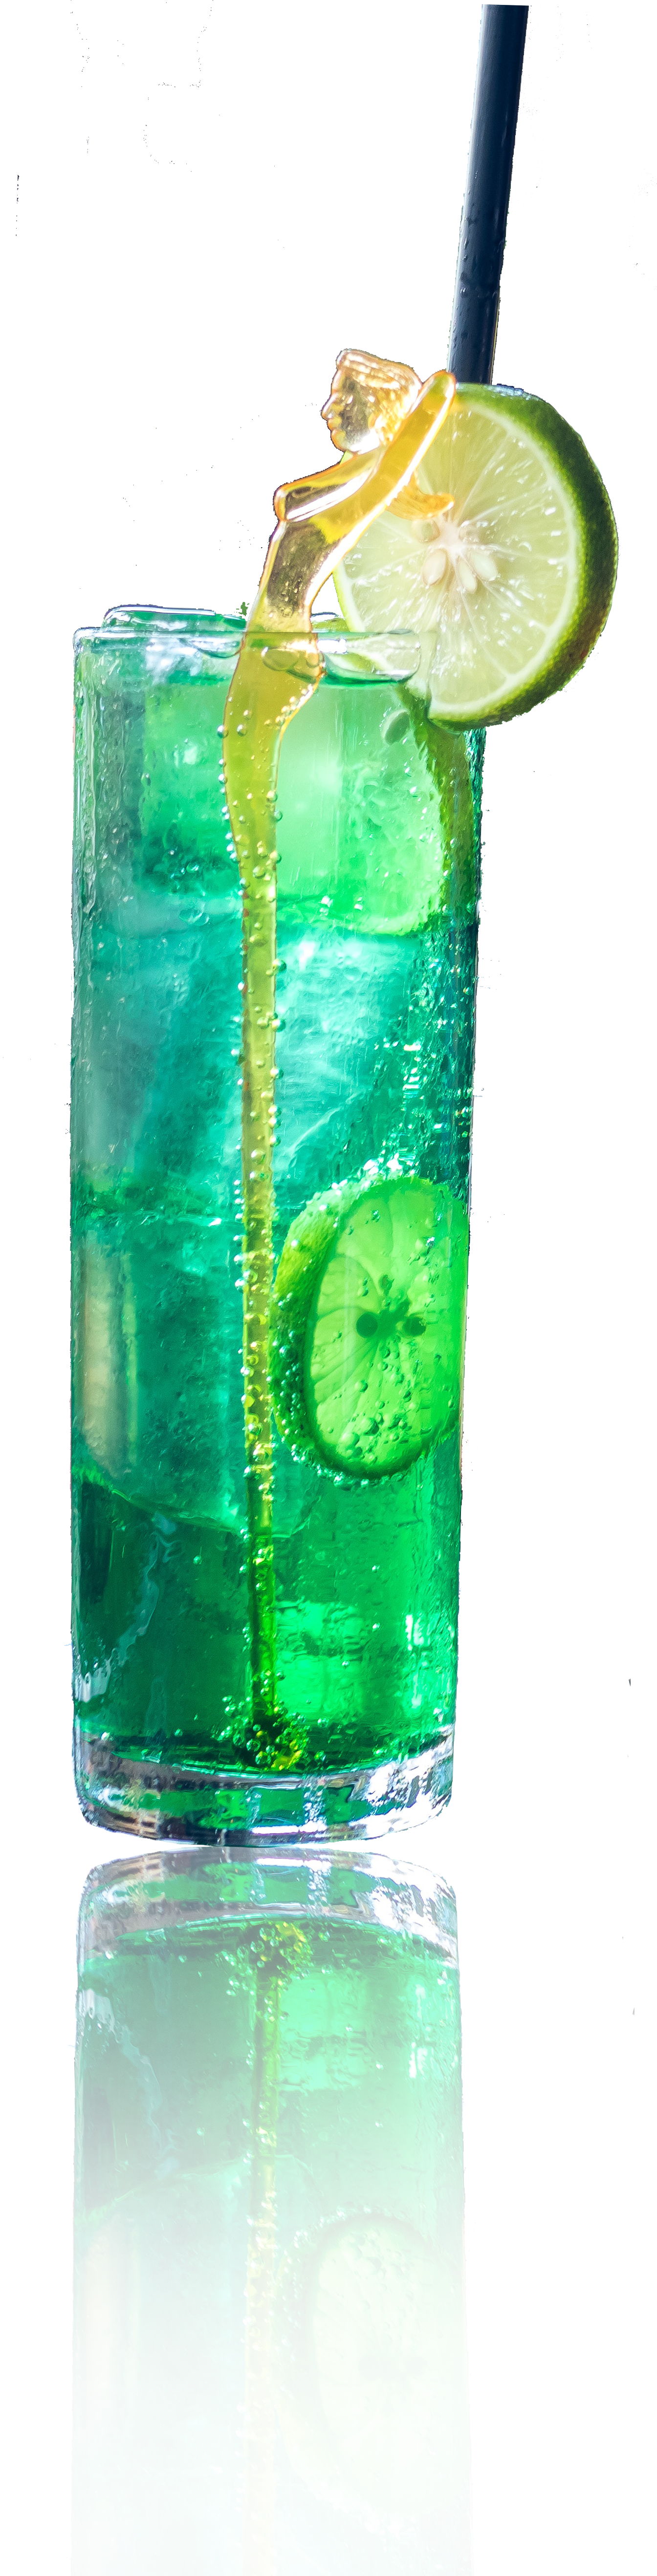 Cup filled with Cool Green Ocean Tea with lemon wedge and straw